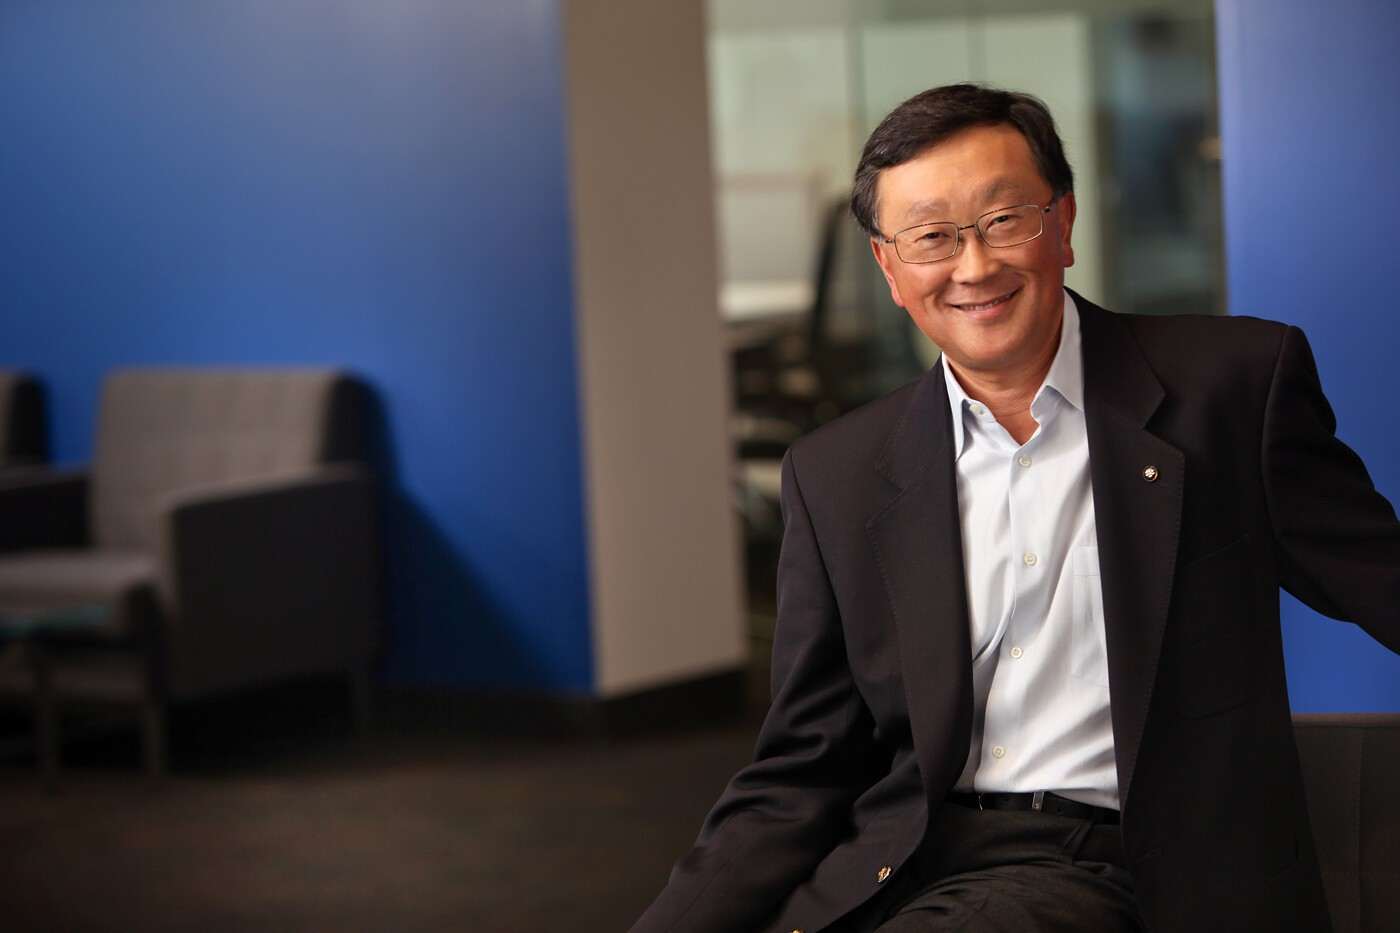 John Chen to speak at Greater Kitchener Waterloo Chamber of Commerce luncheon